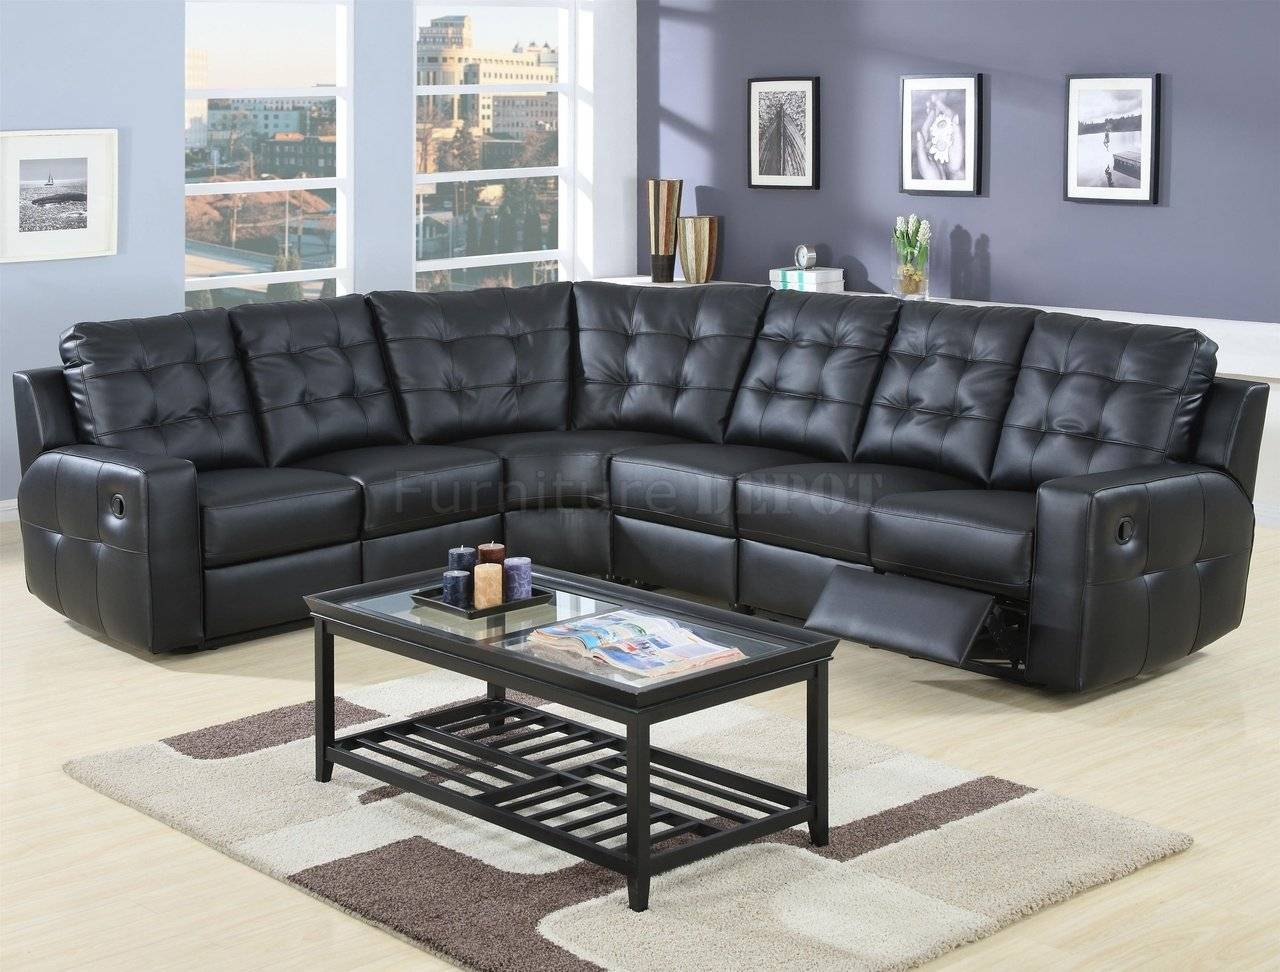 Furniture Create Your Living Room With Cool Sectional Recliner in Black Leather Sectional Sleeper Sofas & 30 The Best Black Leather Sectional Sleeper Sofas islam-shia.org